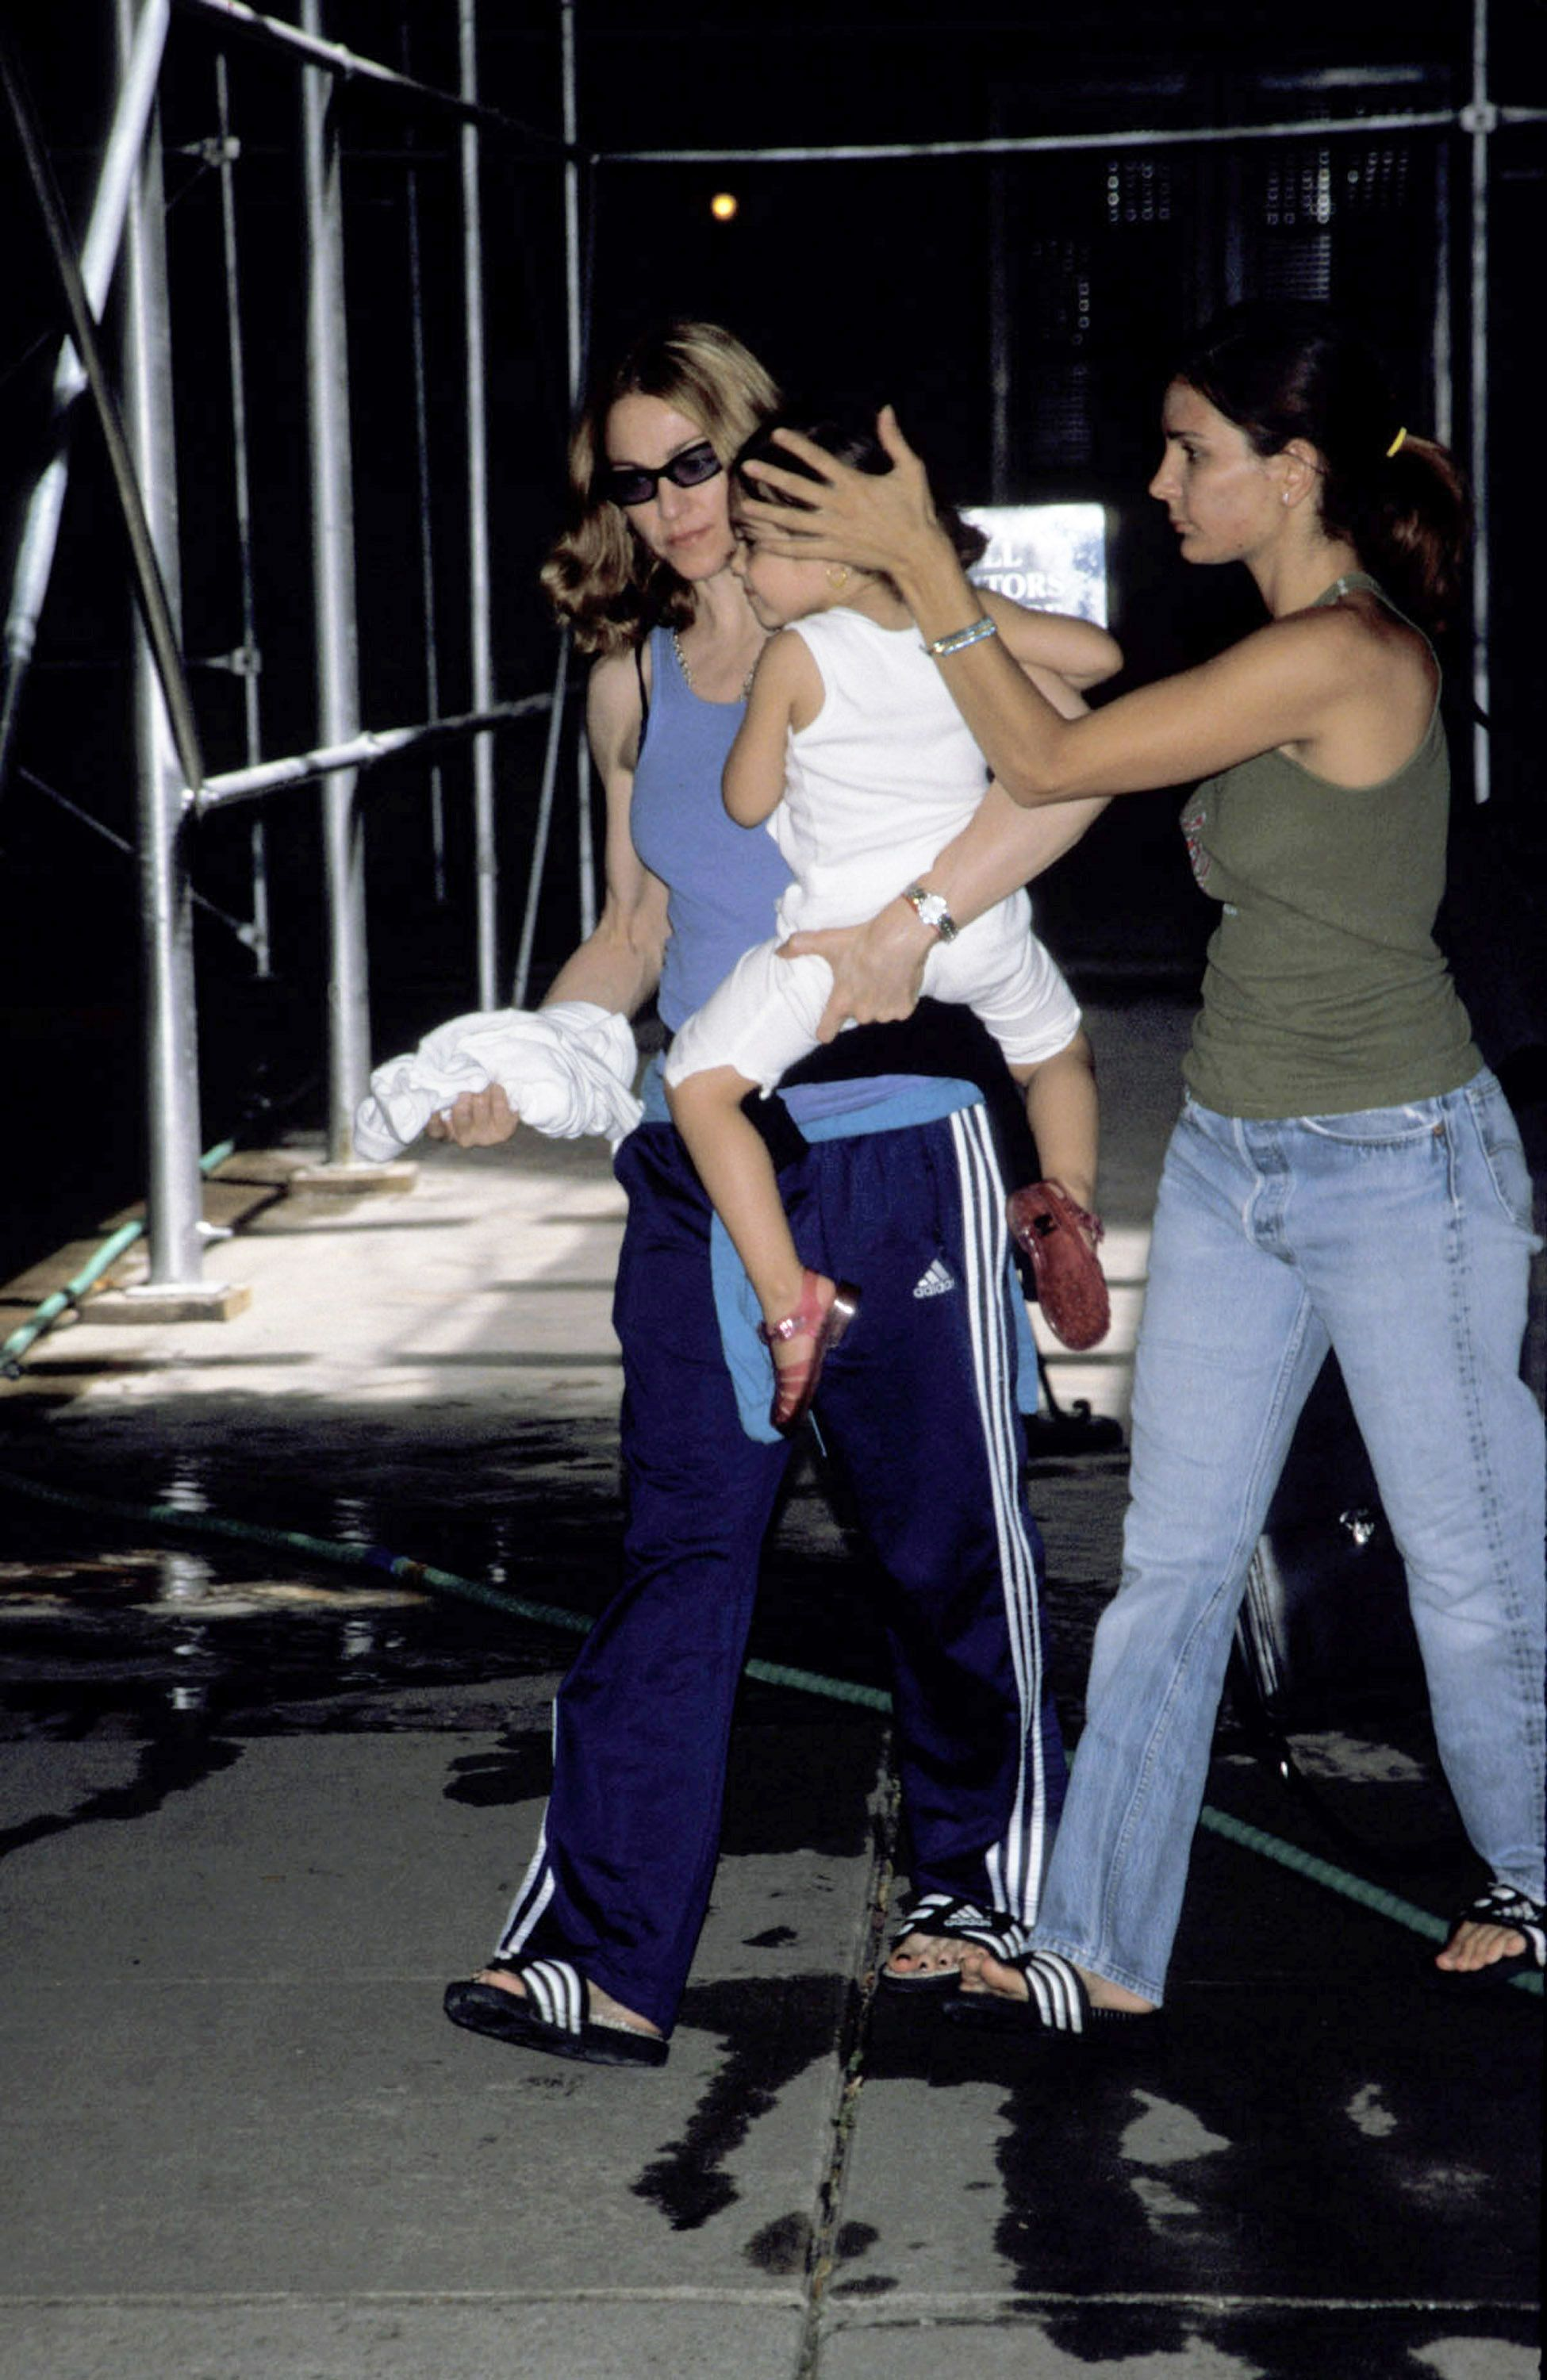 """Madonna&nbsp;gave birth to her first child, <a href=""""https://www.eonline.com/news/886958/madonna-s-baby-girl-is-21-inside-lou"""